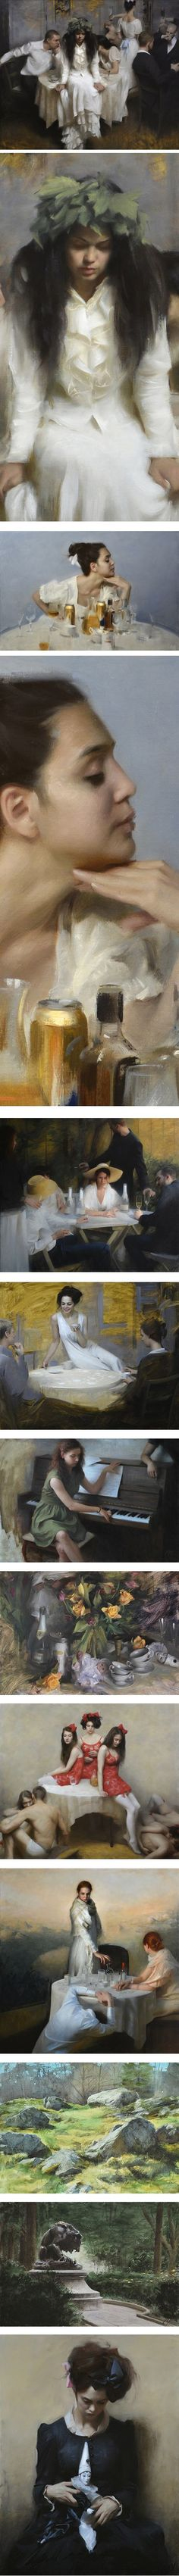 Nick Alm | Lines and Colors :: a blog about drawing, painting, illustration, comics, concept art and other visual arts